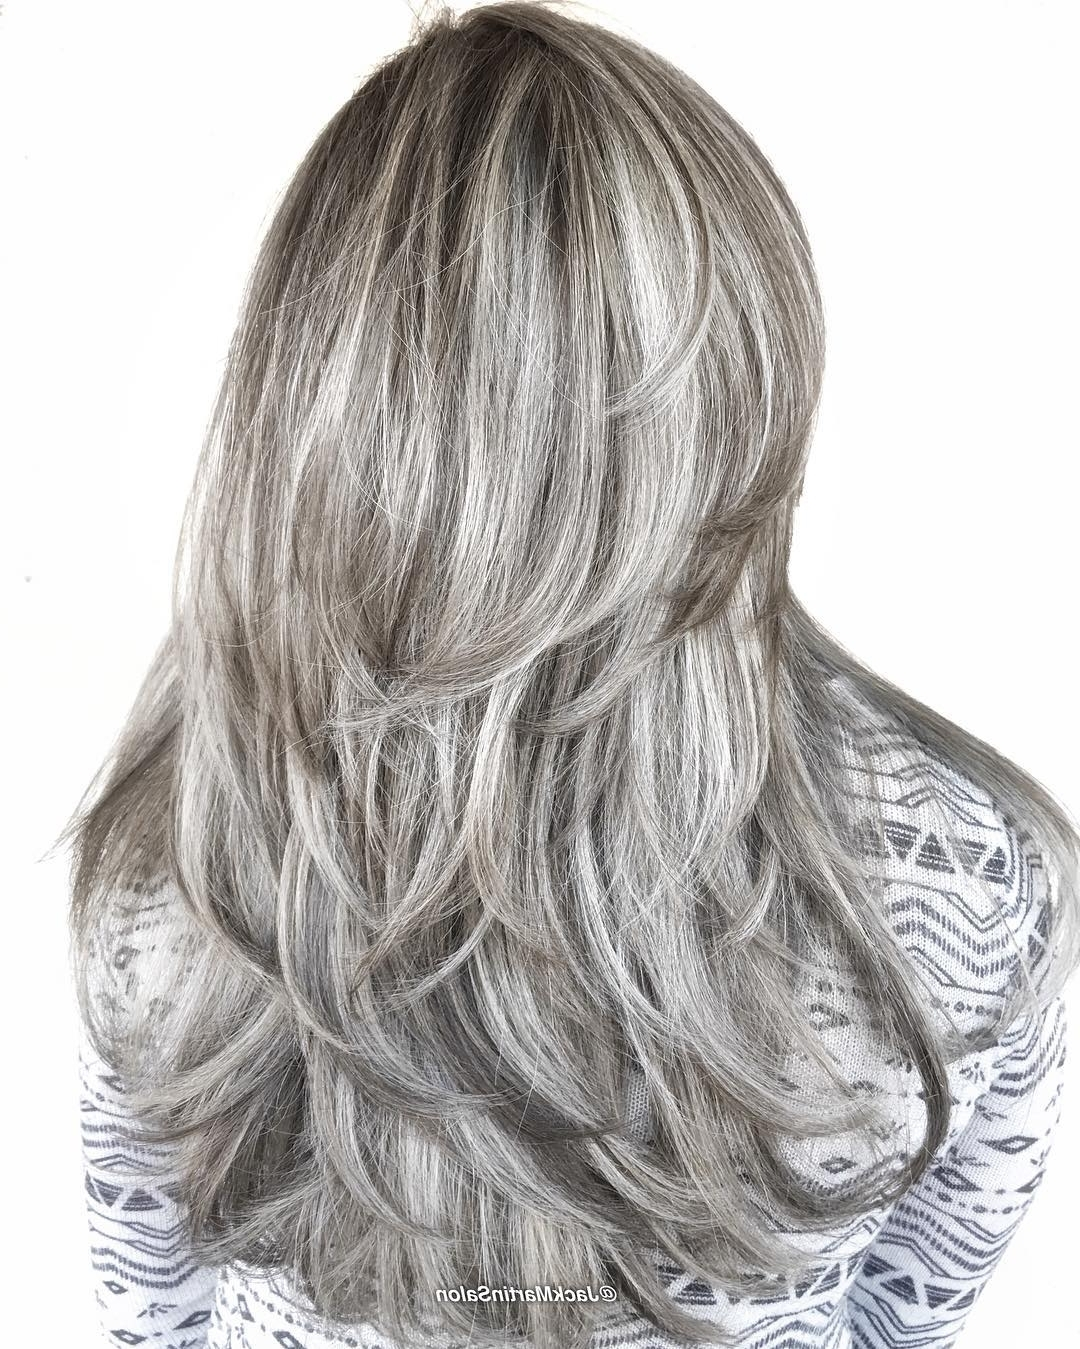 40 Hair Color Ideas That Are Perfectly On Point Regarding Trendy Dark Brown Hair Hairstyles With Silver Blonde Highlights (View 3 of 20)